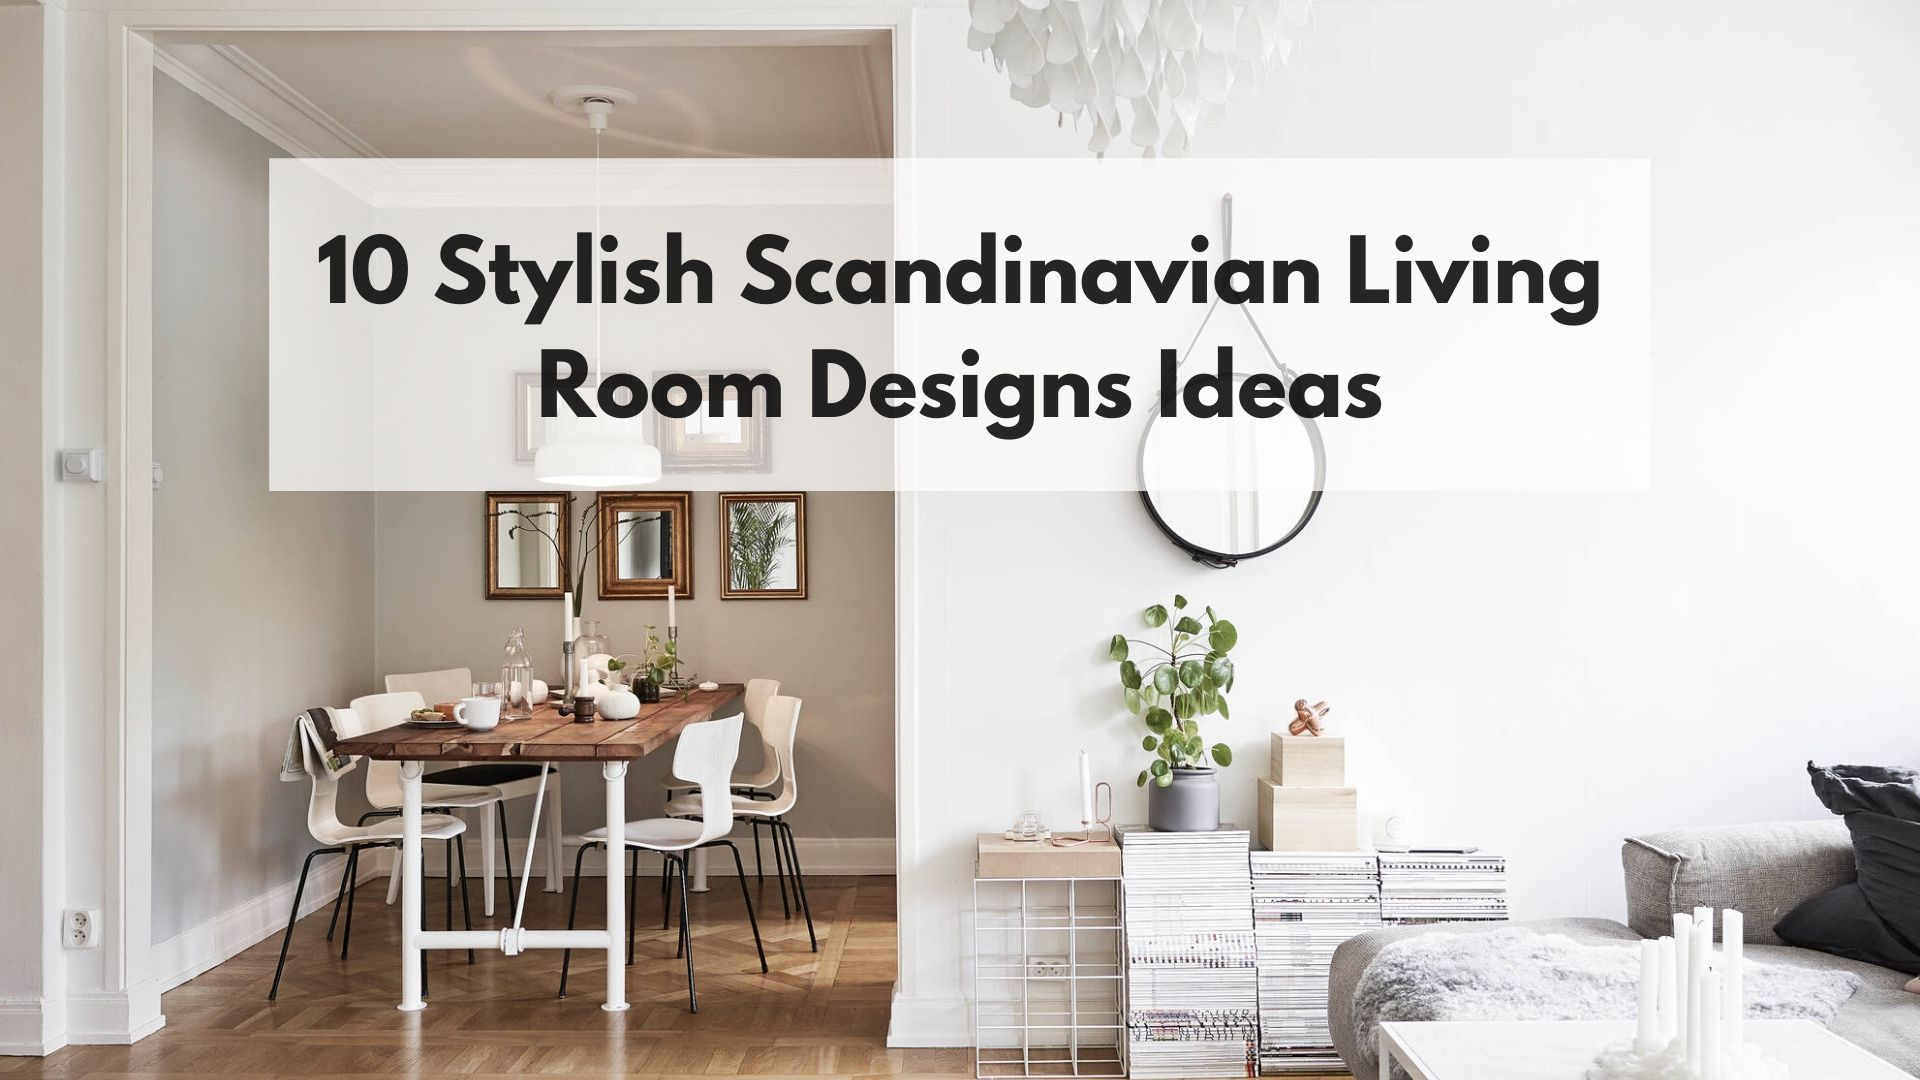 10 Stylish Scandinavian Living Room Designs Ideas Skandinavisk Mobeldesign